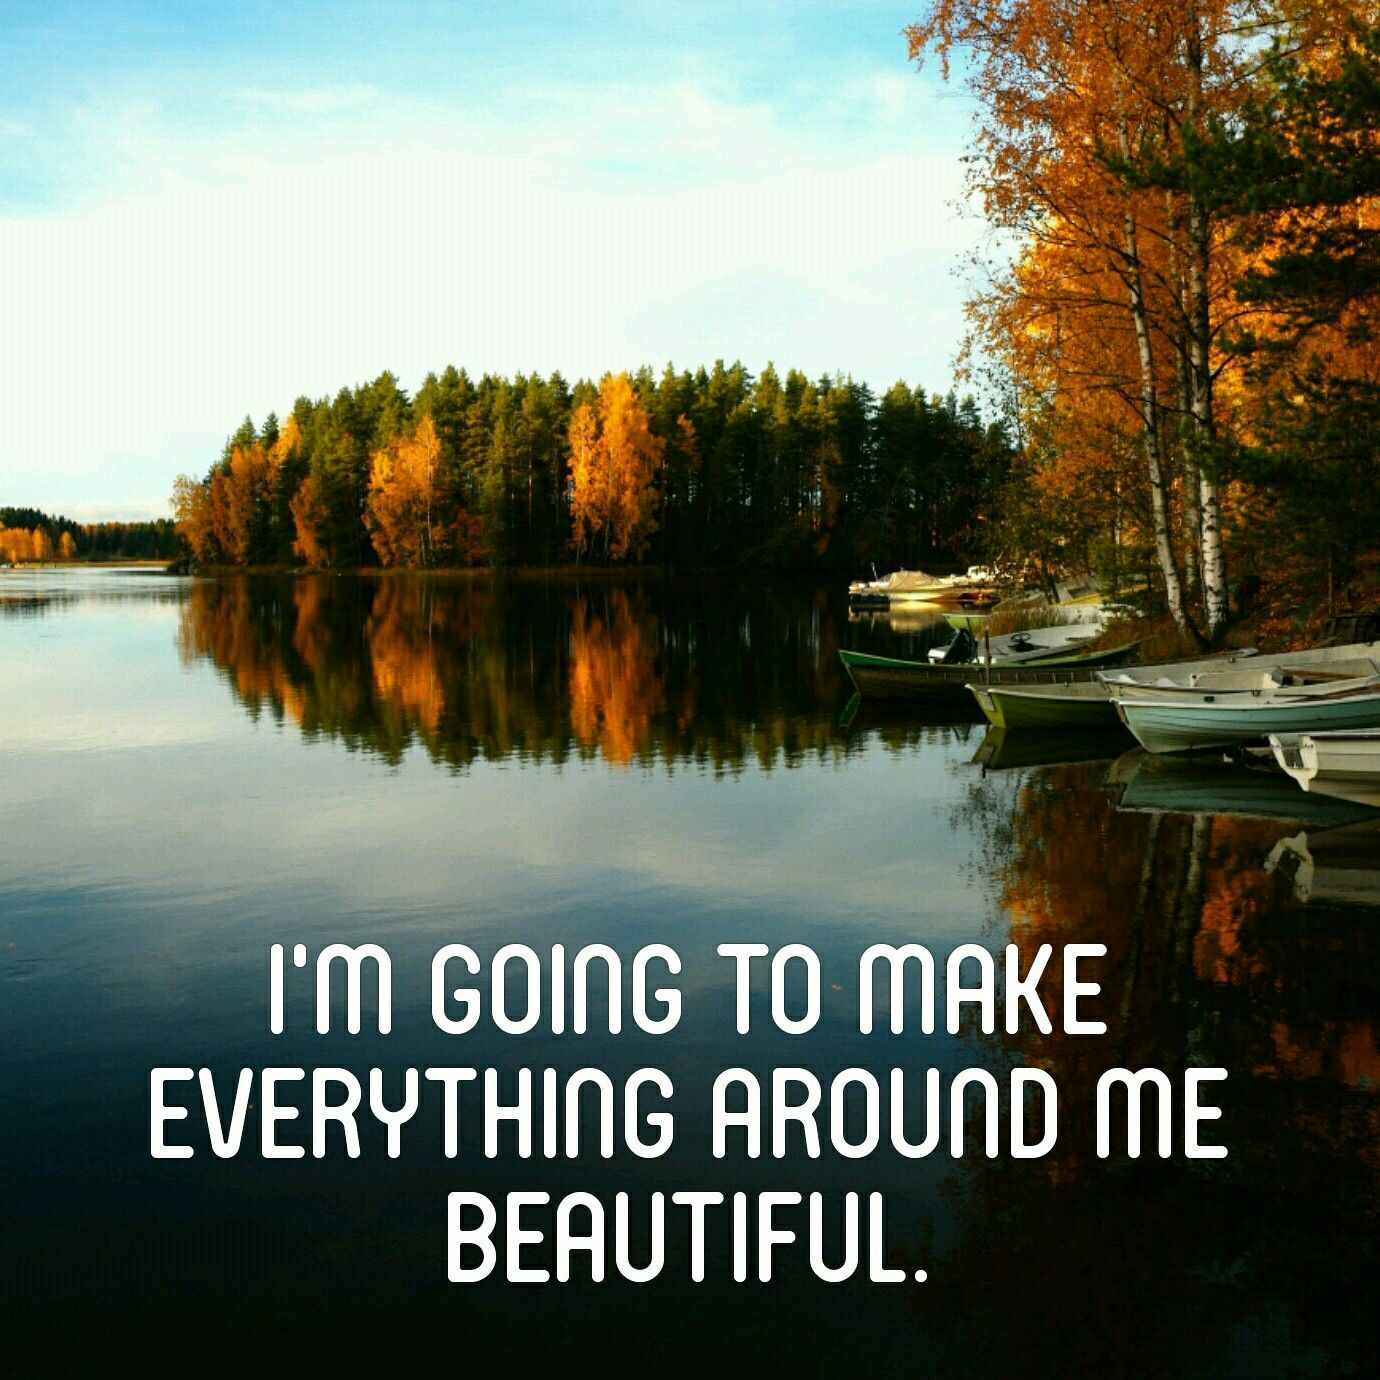 I'm going to make everything around me beautiful   inspirational quote